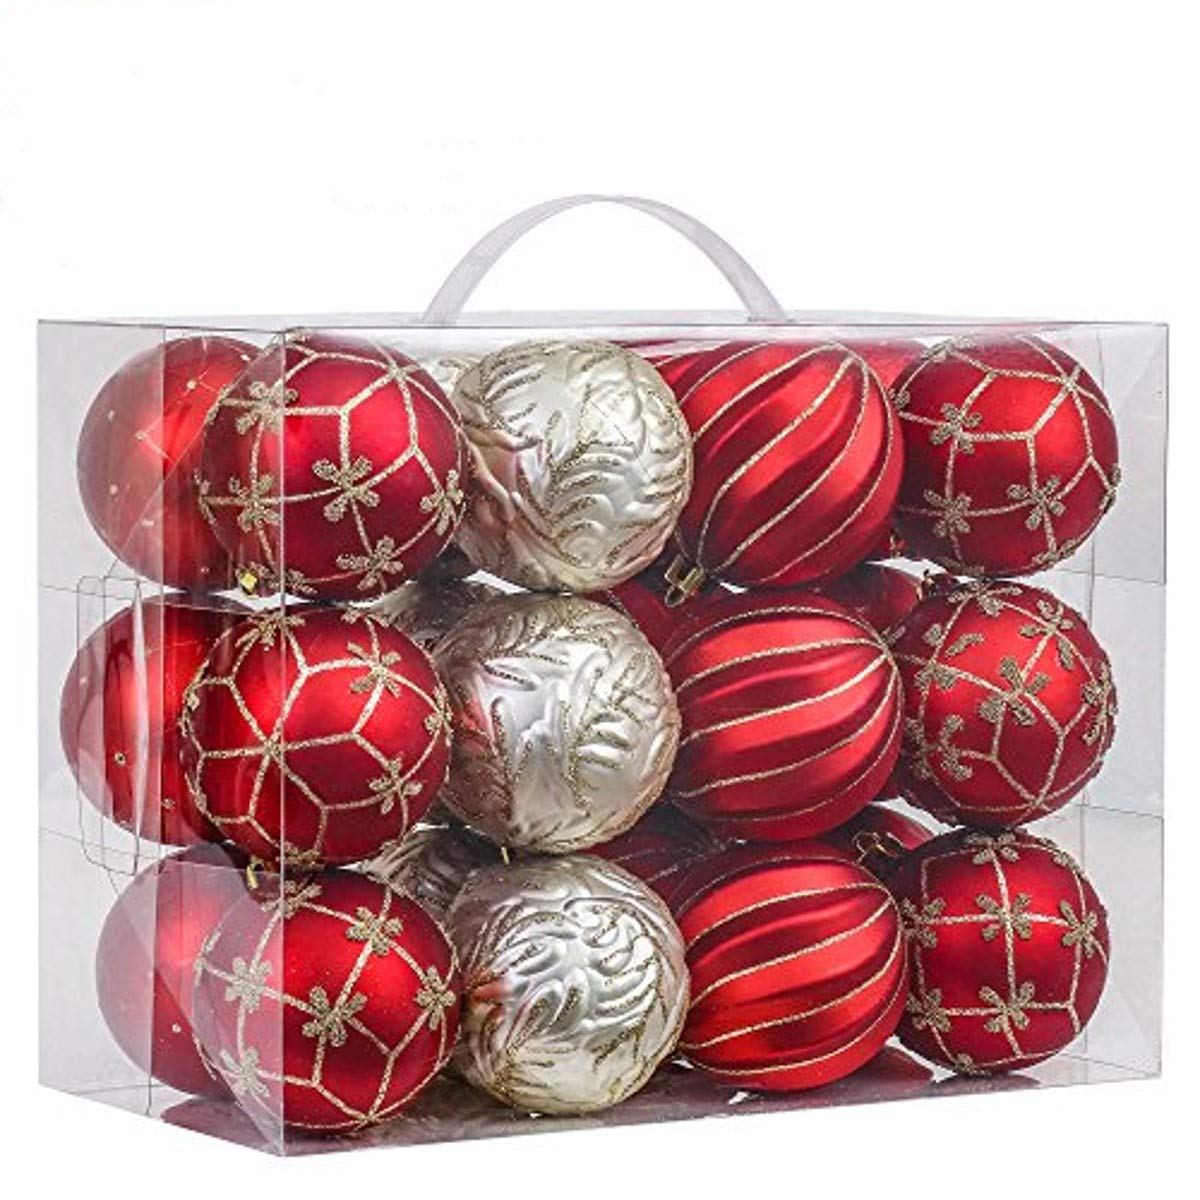 V&M VALERY MADELYN 24ct Shatterproof Christmas Balls Ornaments Luxury Red and Gold,2.76inch/7CM Christmas Hanging Ornaments,24 Hooks Included, Themed with Tree Skirt(Not Included) 16XM01BSLX002